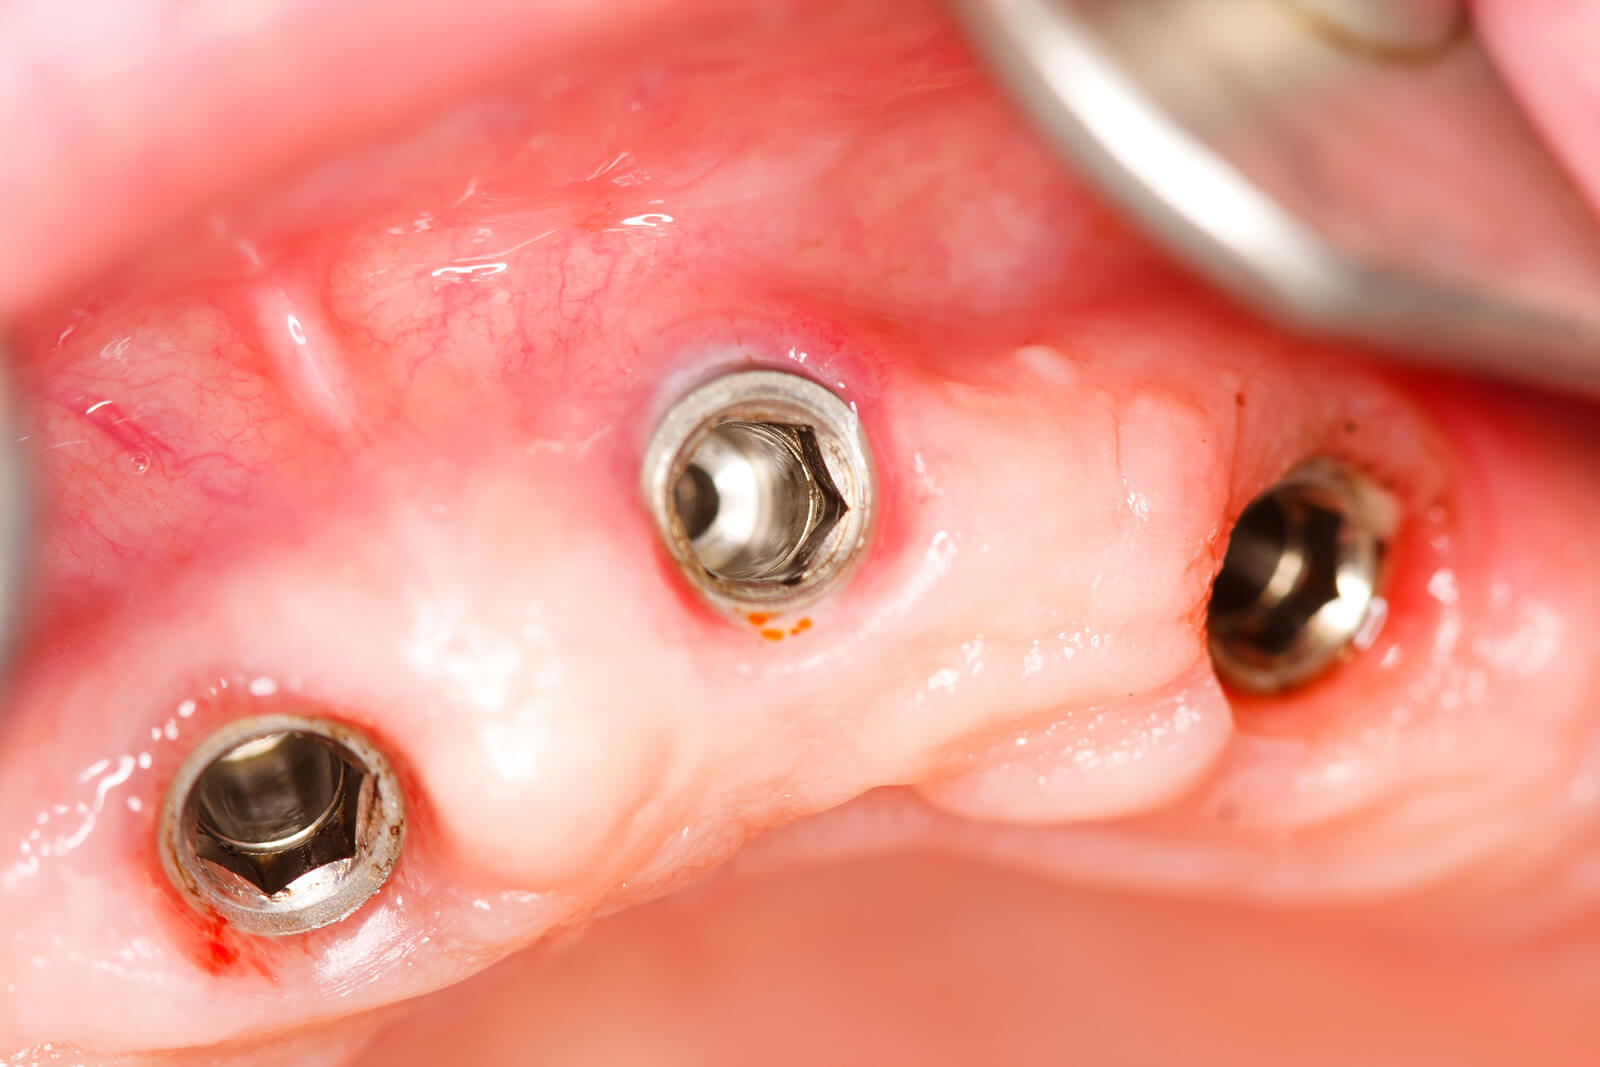 Dental implants FAQ